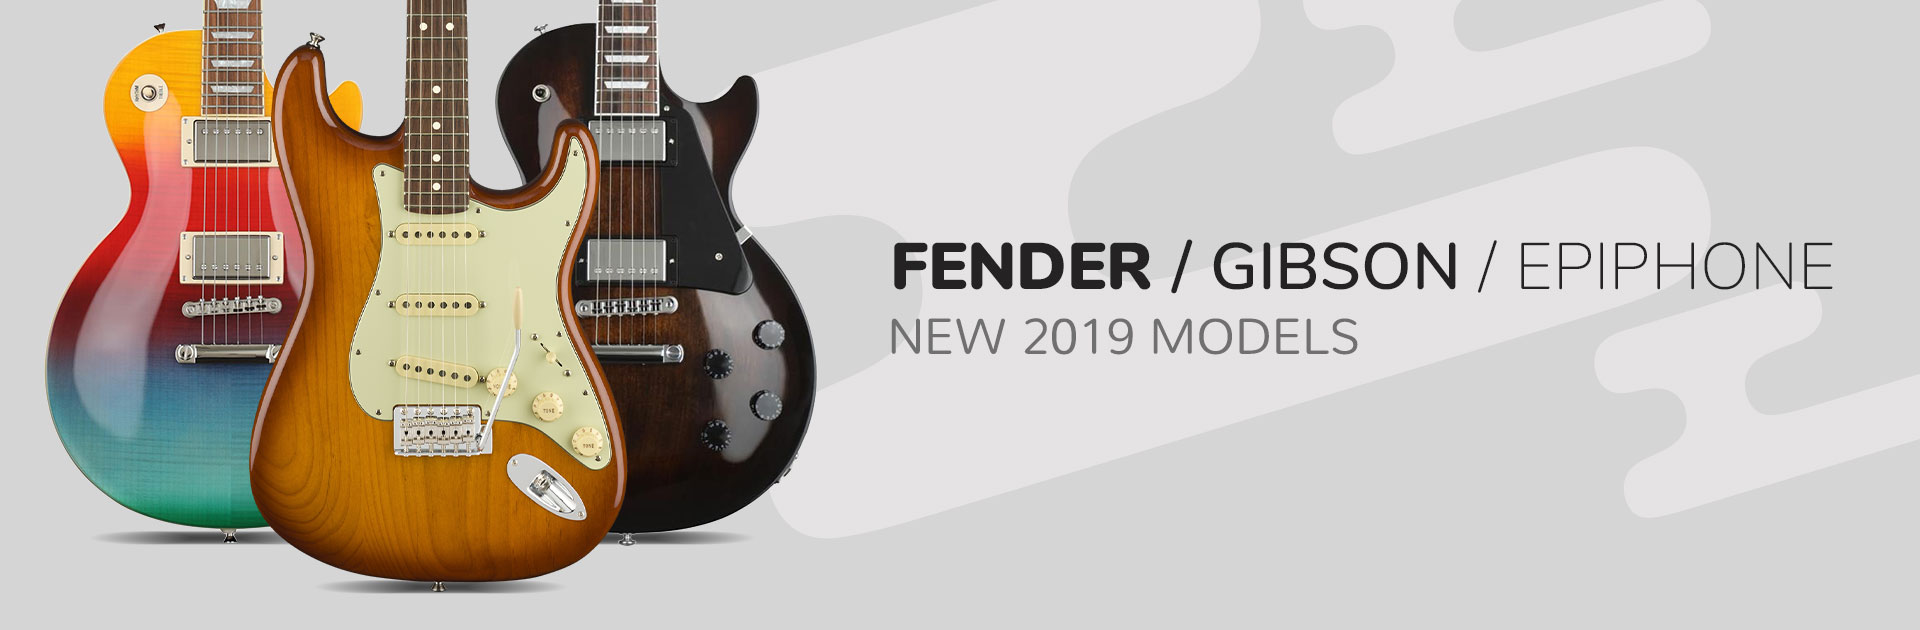 fender-news-lp.jpg